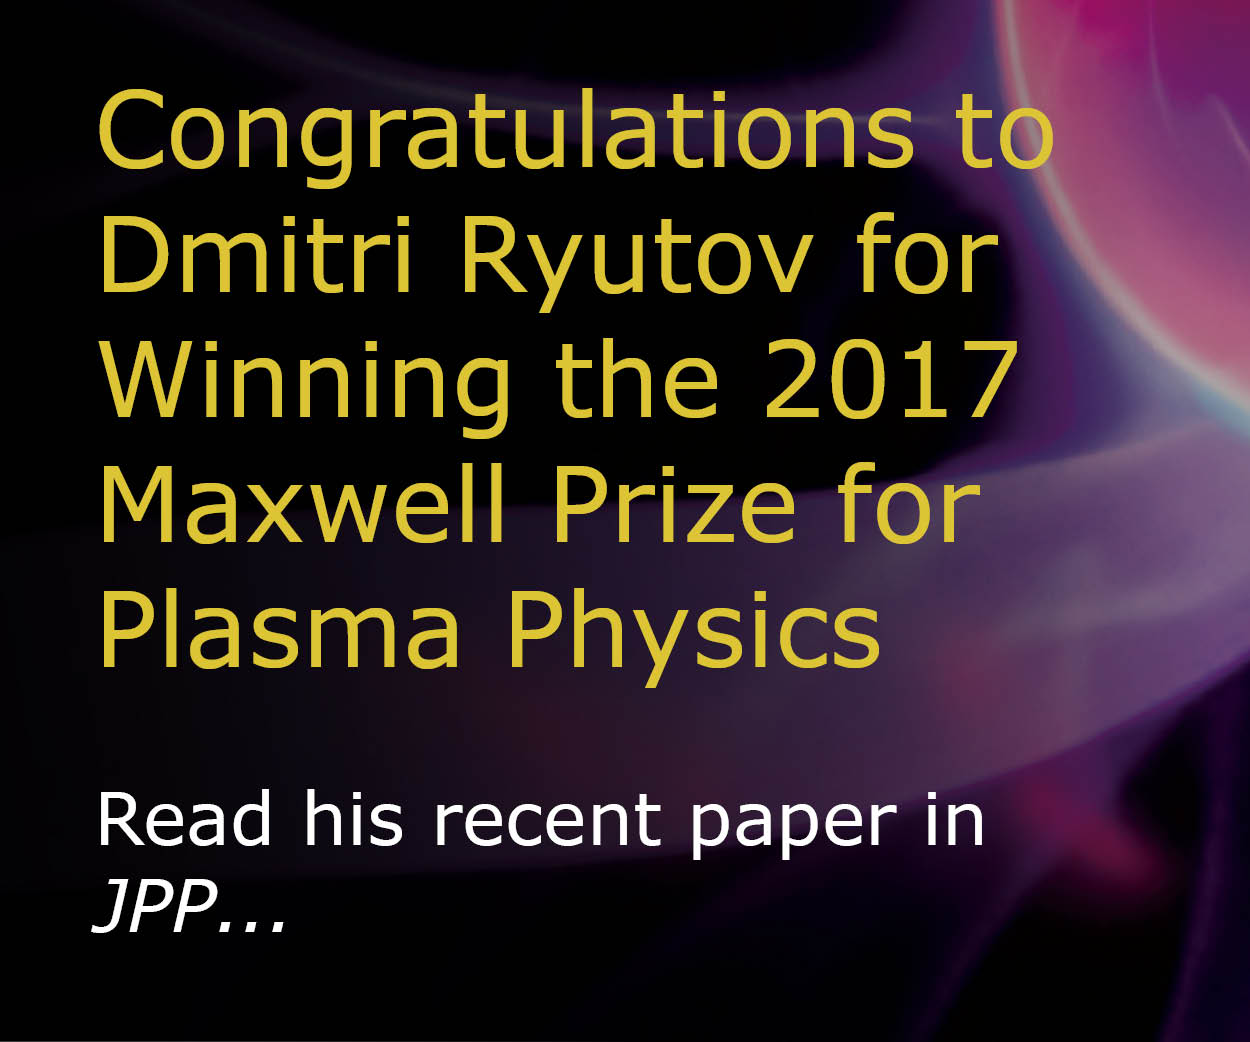 Congratulations to Dmitri Ryutov for Winning the 2017 Maxwell Prize for Plasma Physics